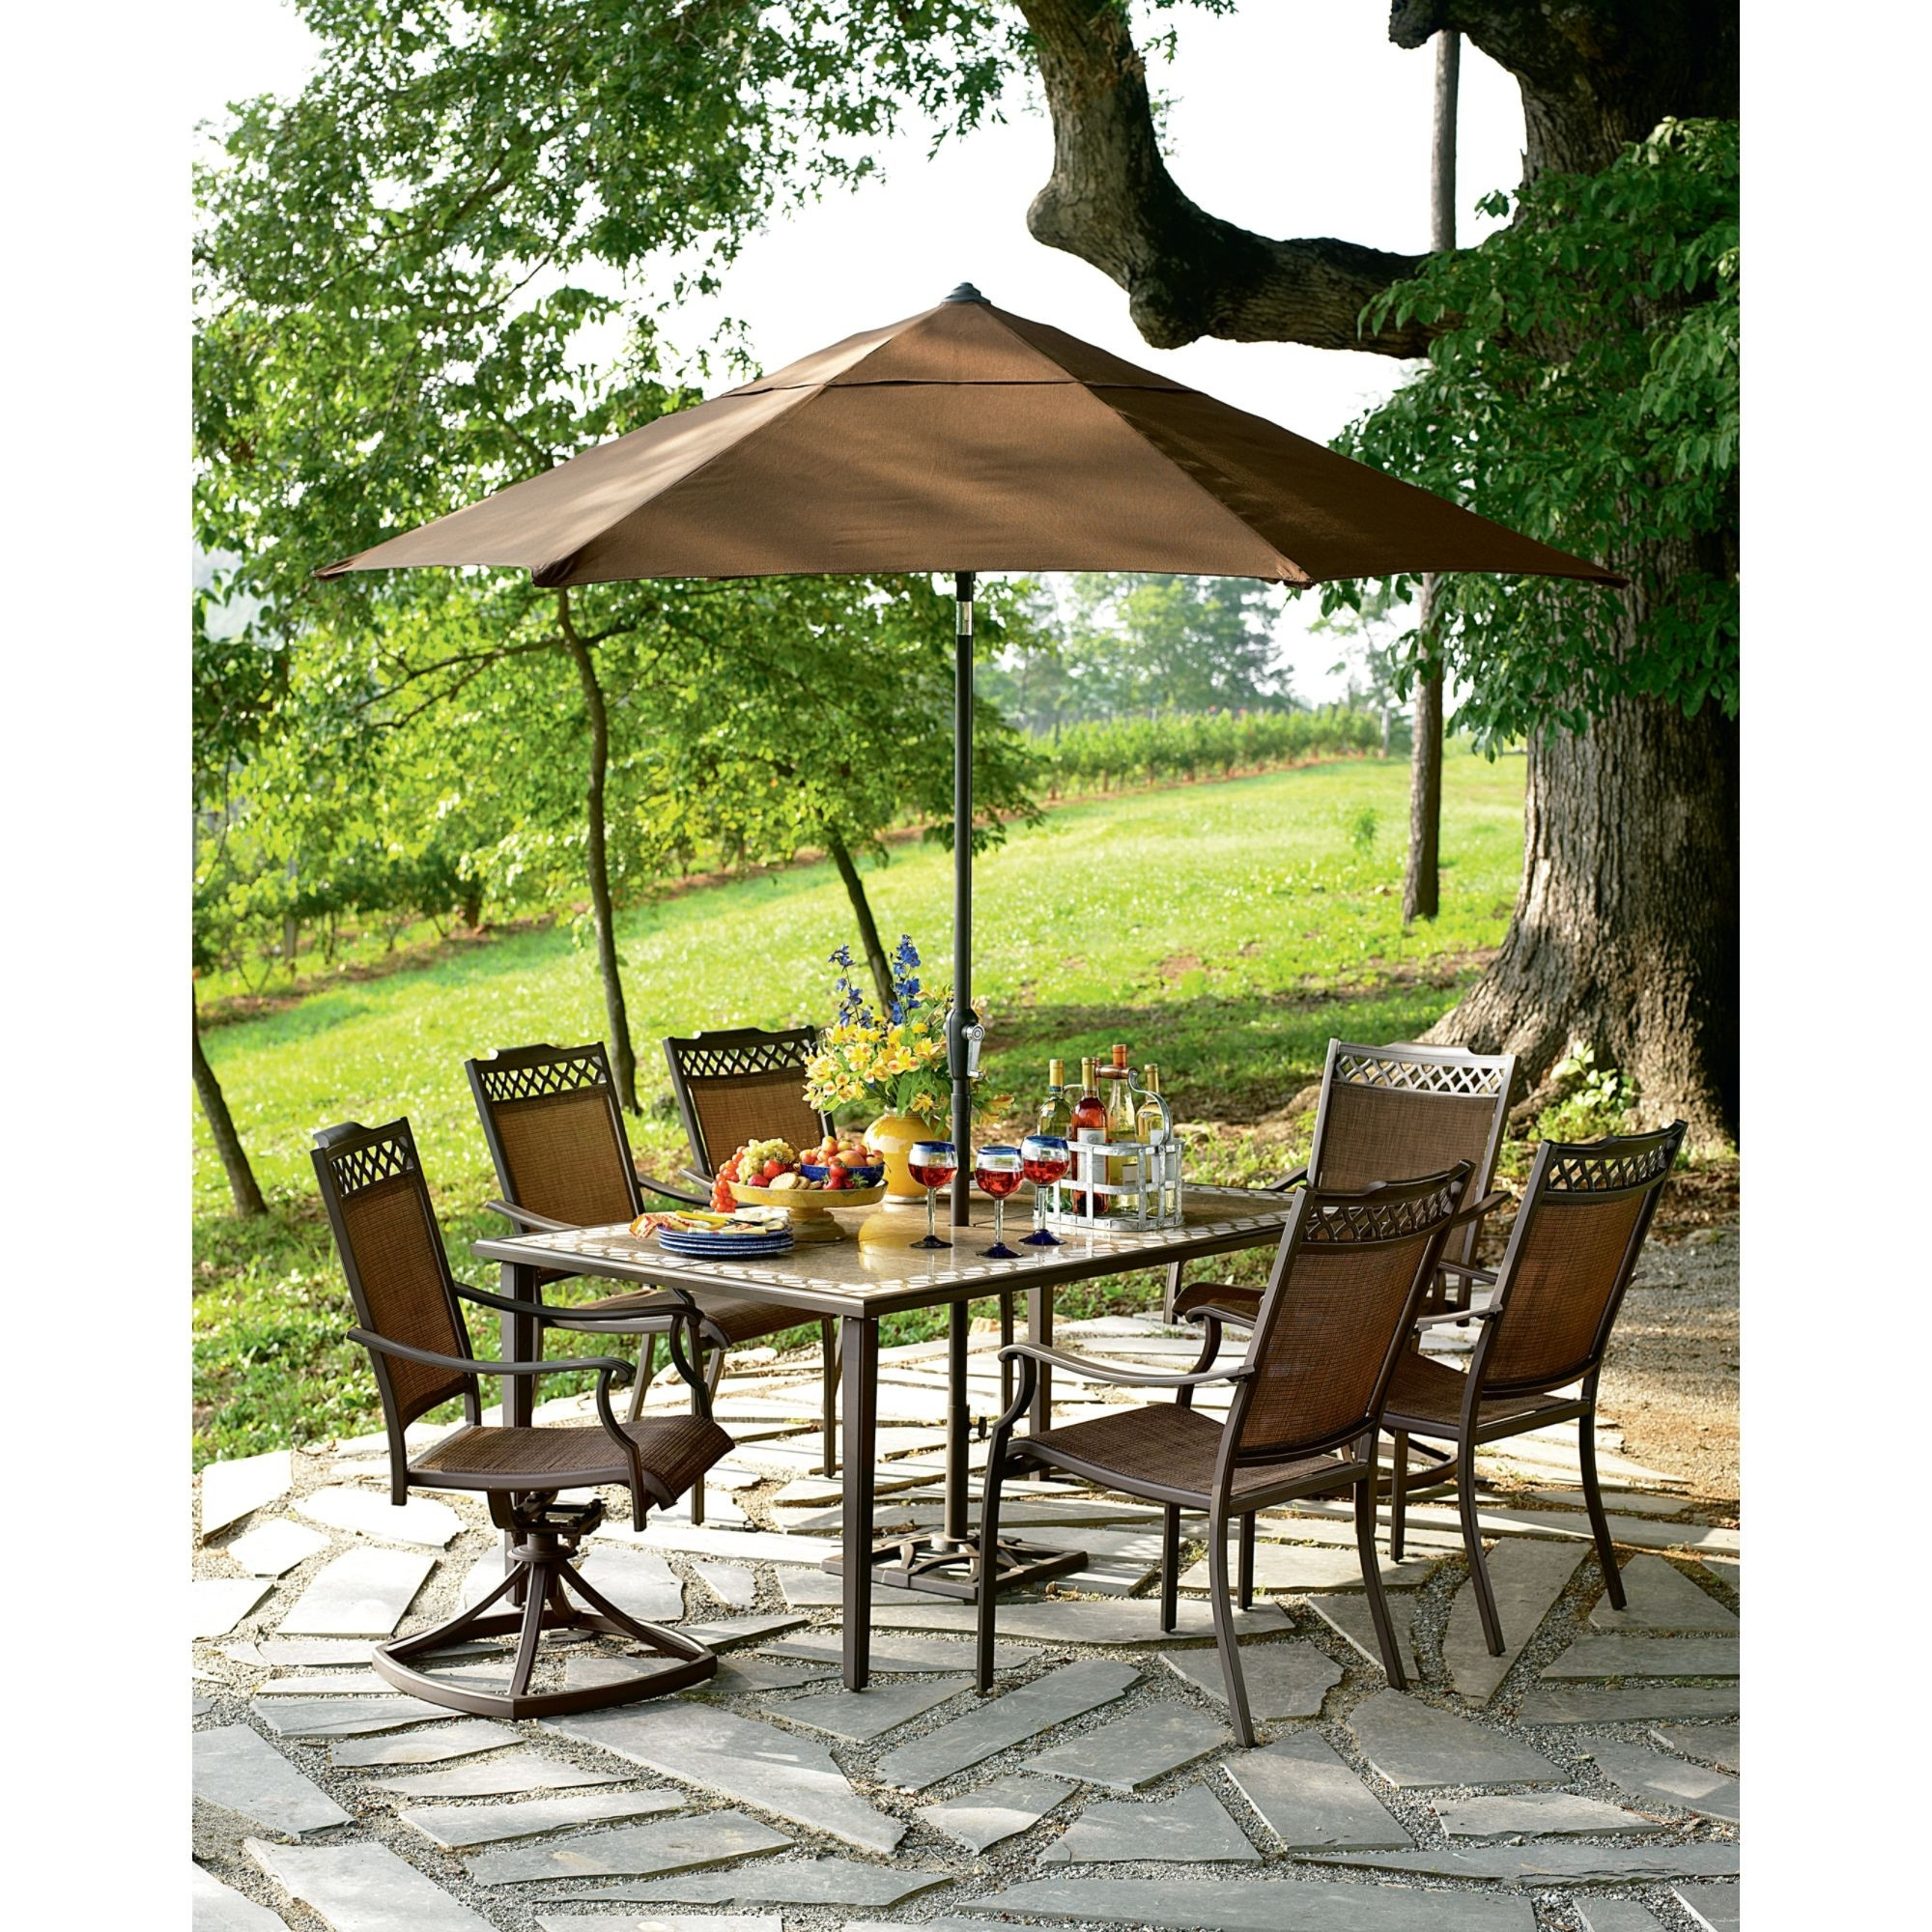 Popular Sears Patio Umbrellas Pertaining To Sears Patio Umbrella New Popular Patio Umbrella With Stand (View 11 of 20)